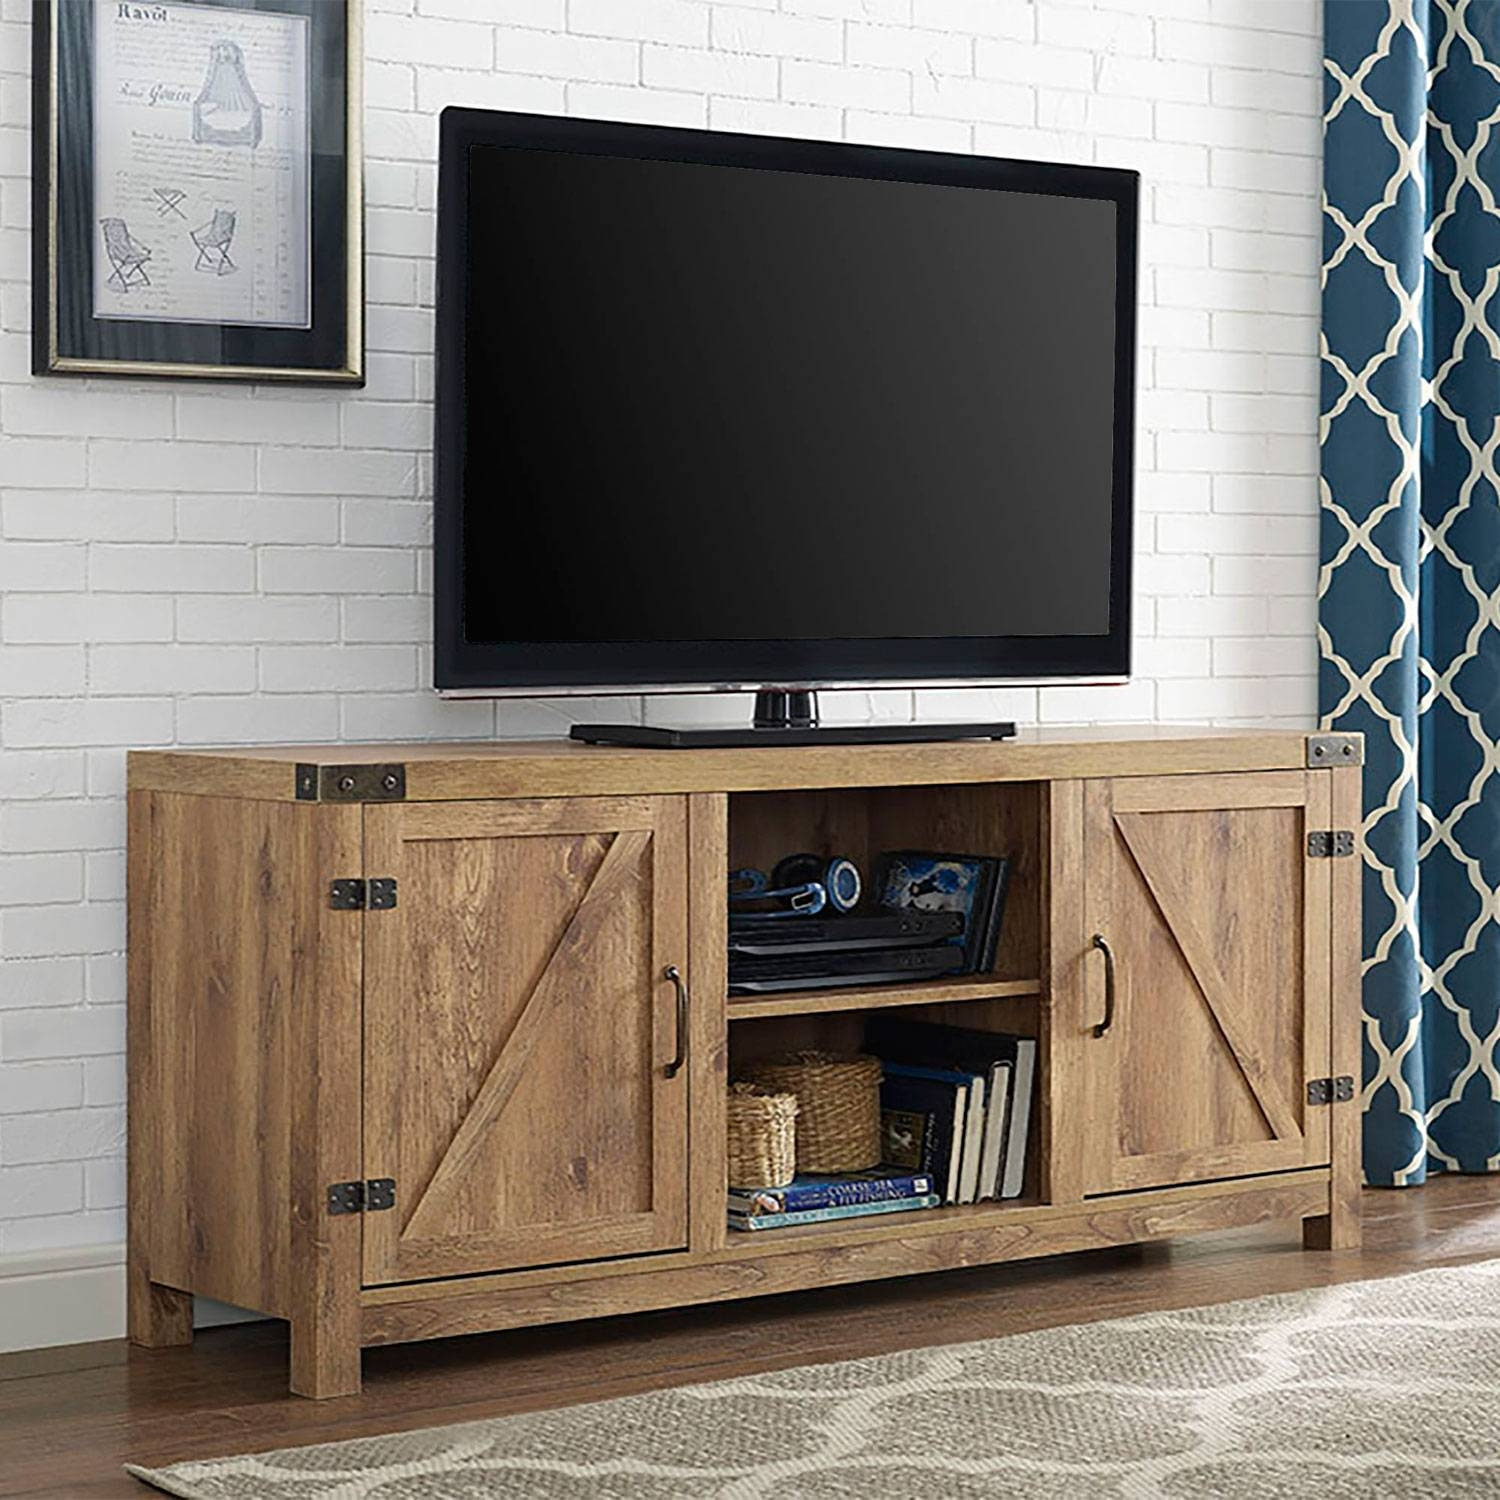 Tv Stands & Cabinets On Sale | Bellacor Regarding Tv Stands With Baskets (View 15 of 15)